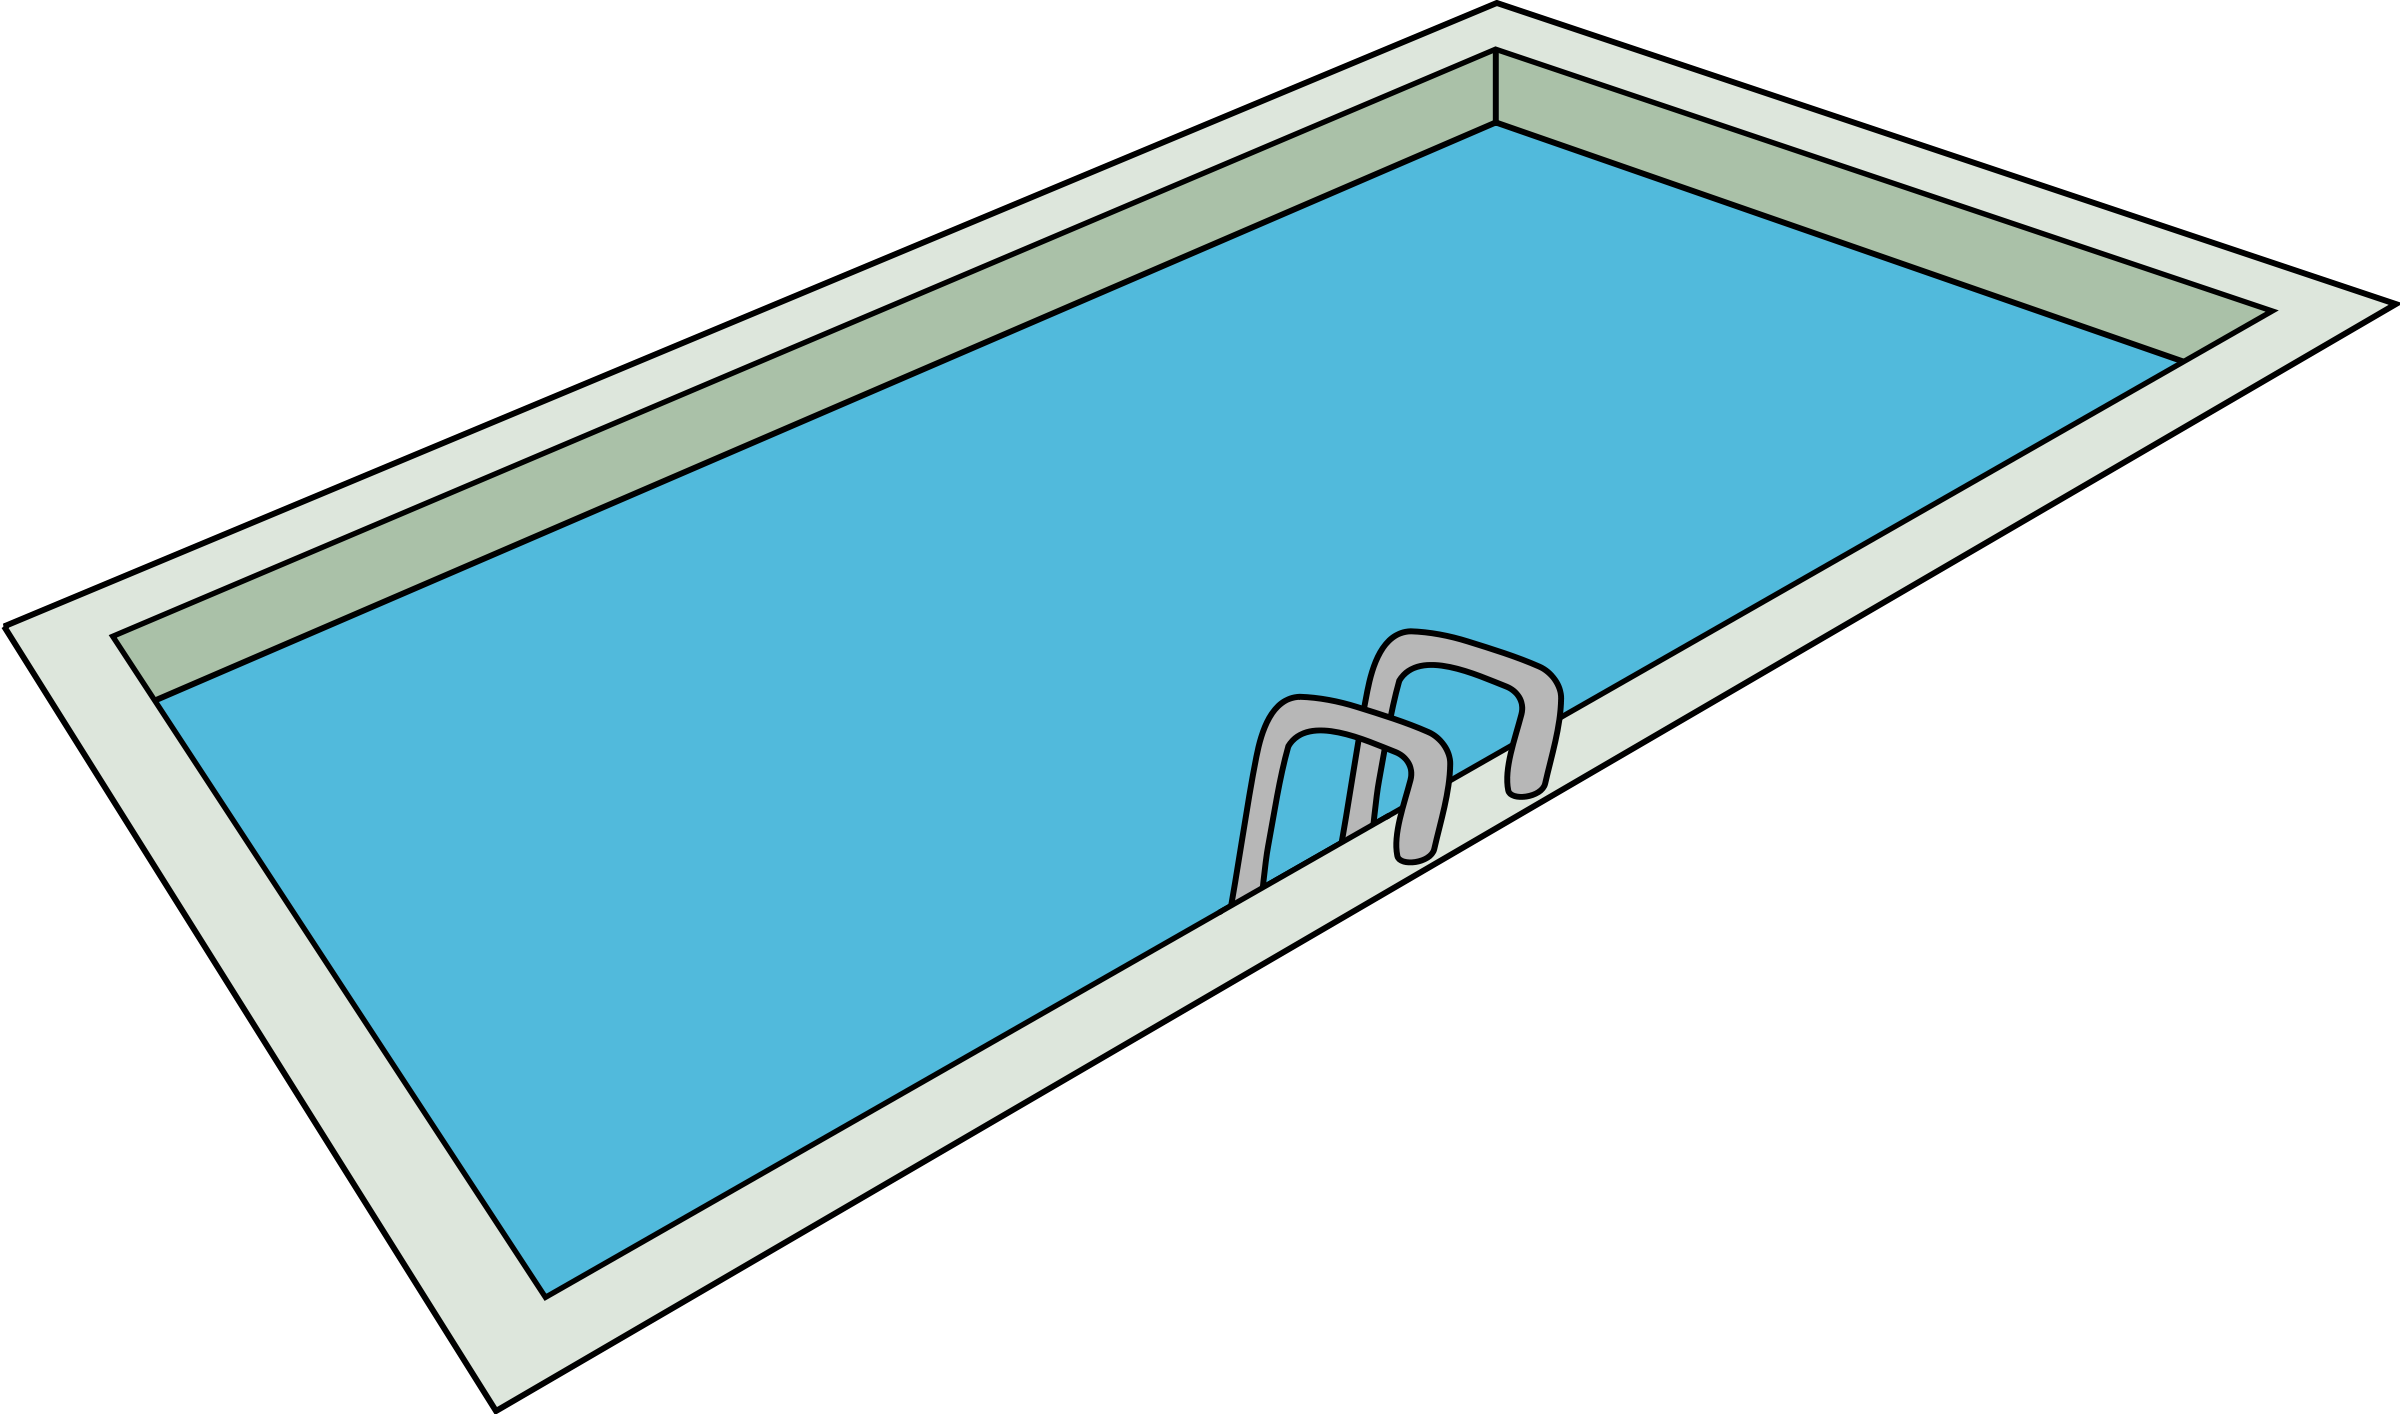 pool clipart-pool clipart-1